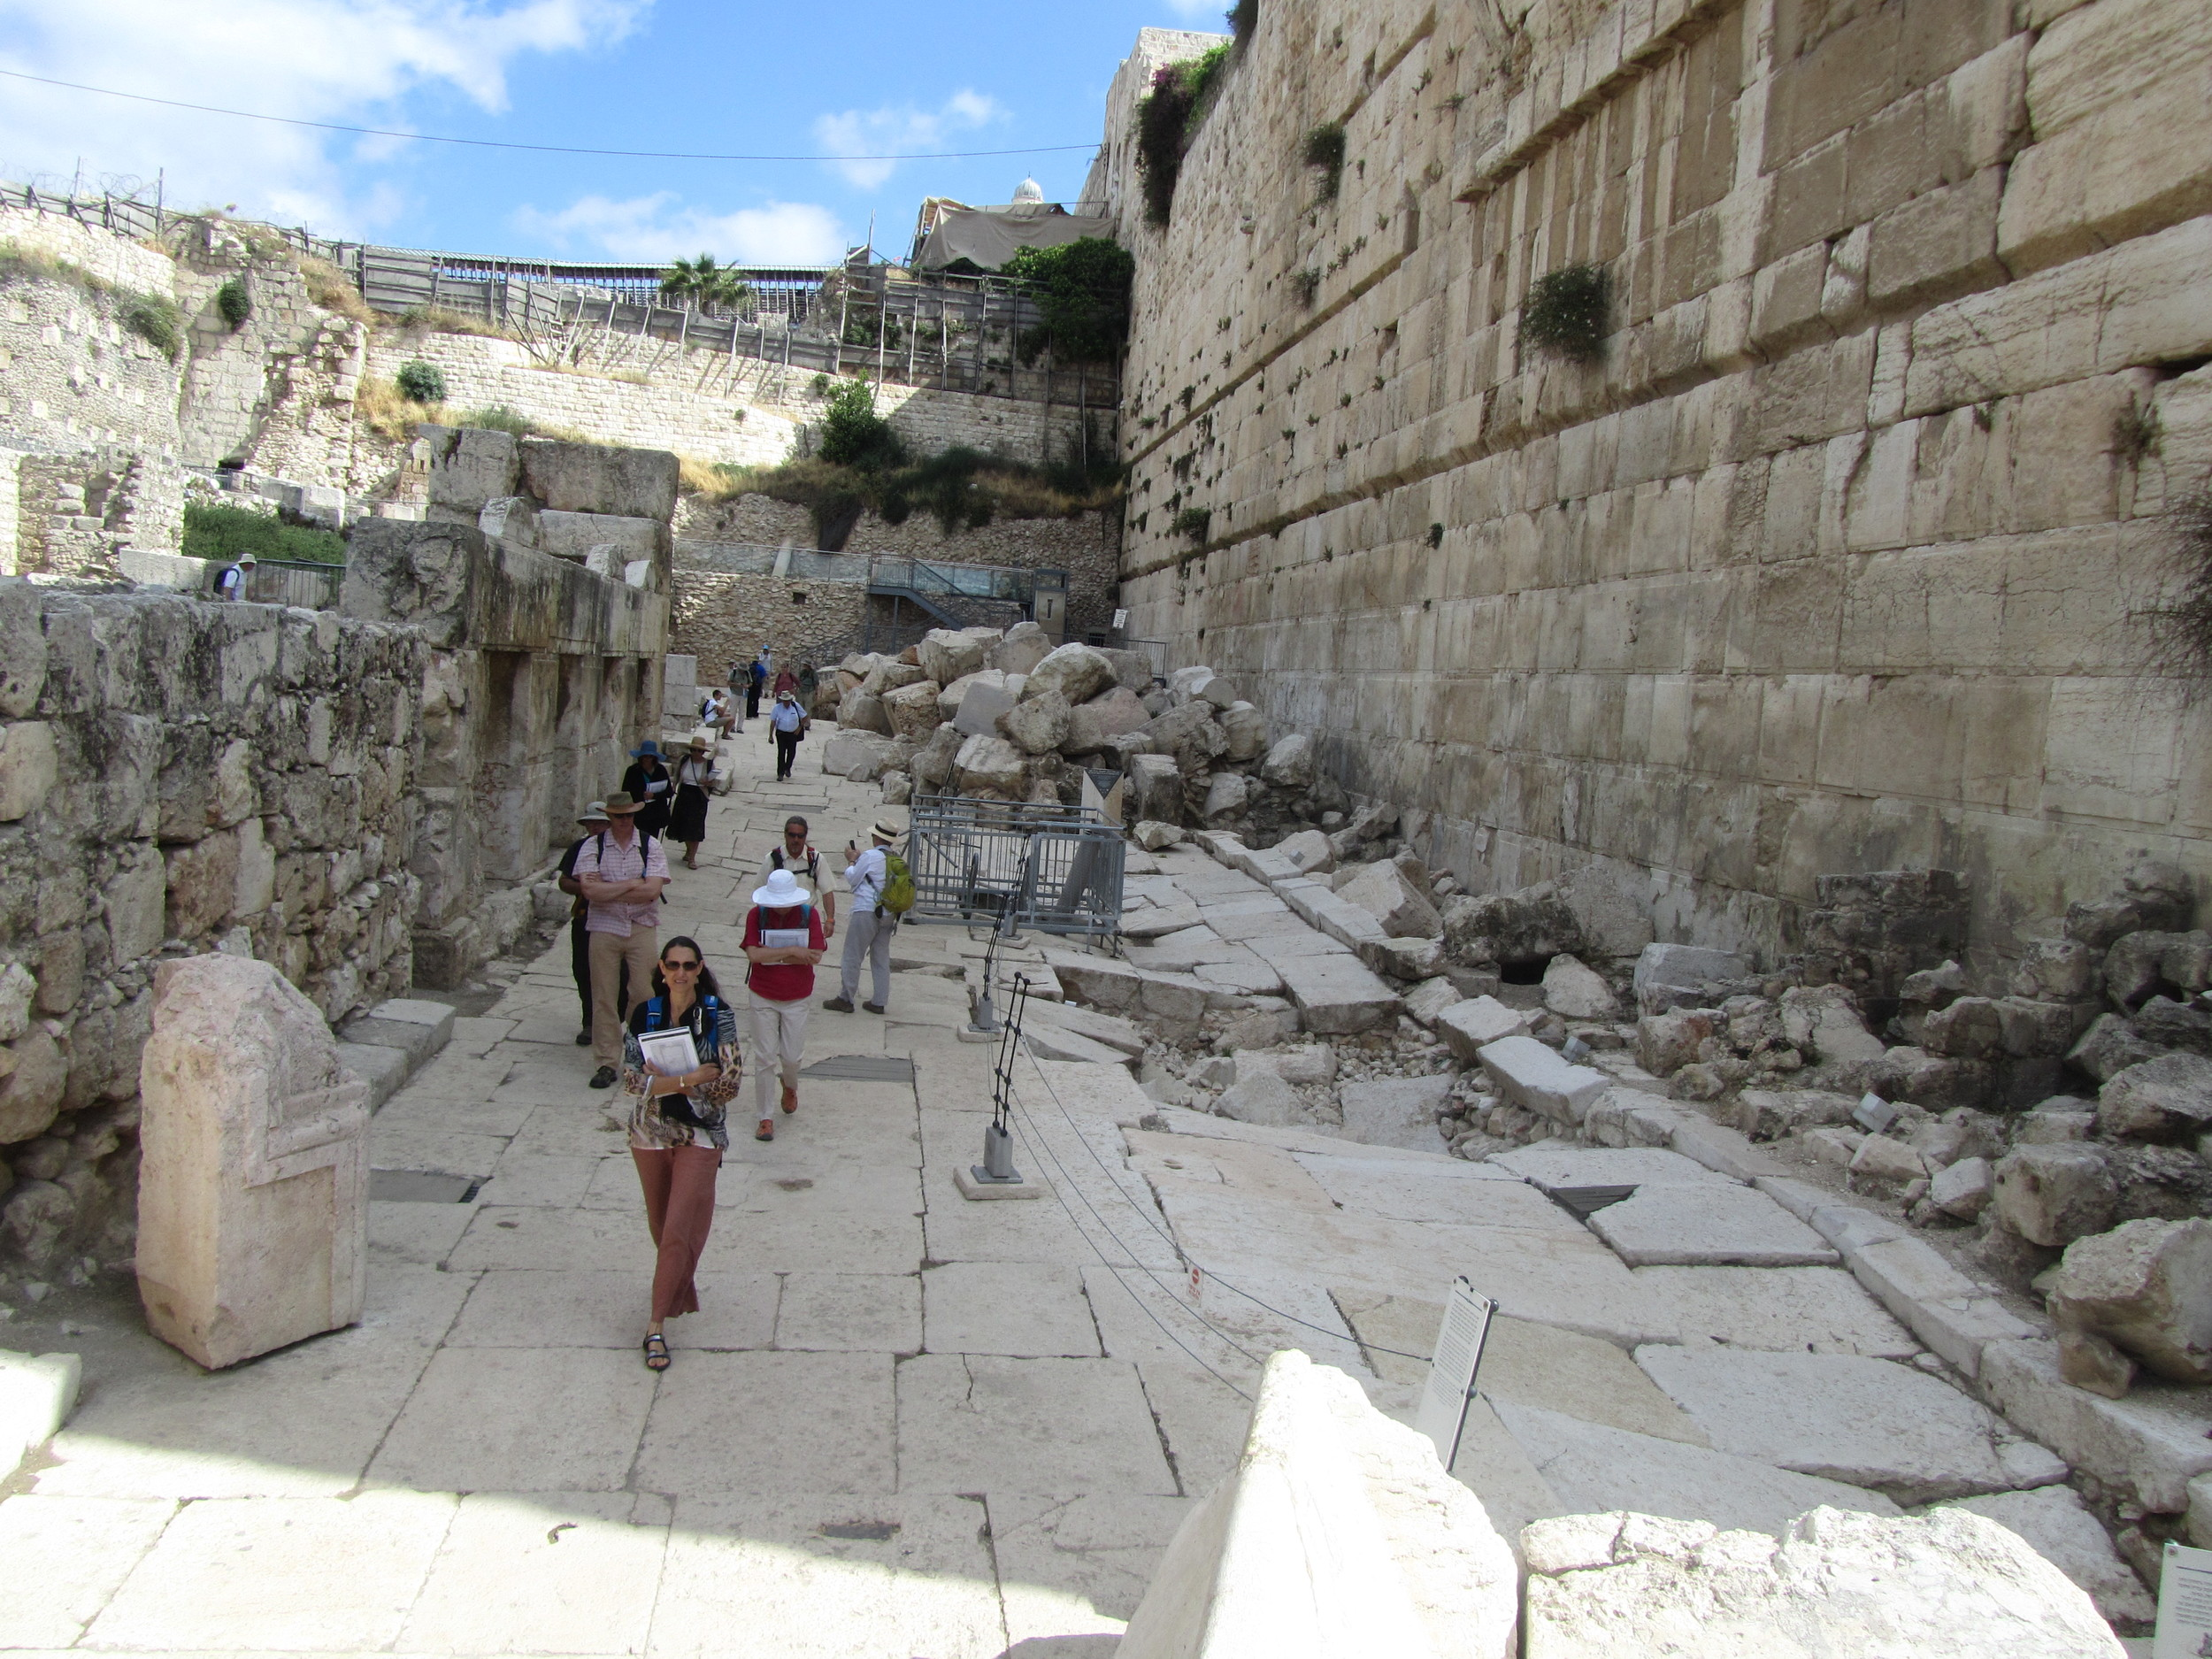 We walked the Herodian Streets around the southern Temple Mount which Jesus and the disciples walked